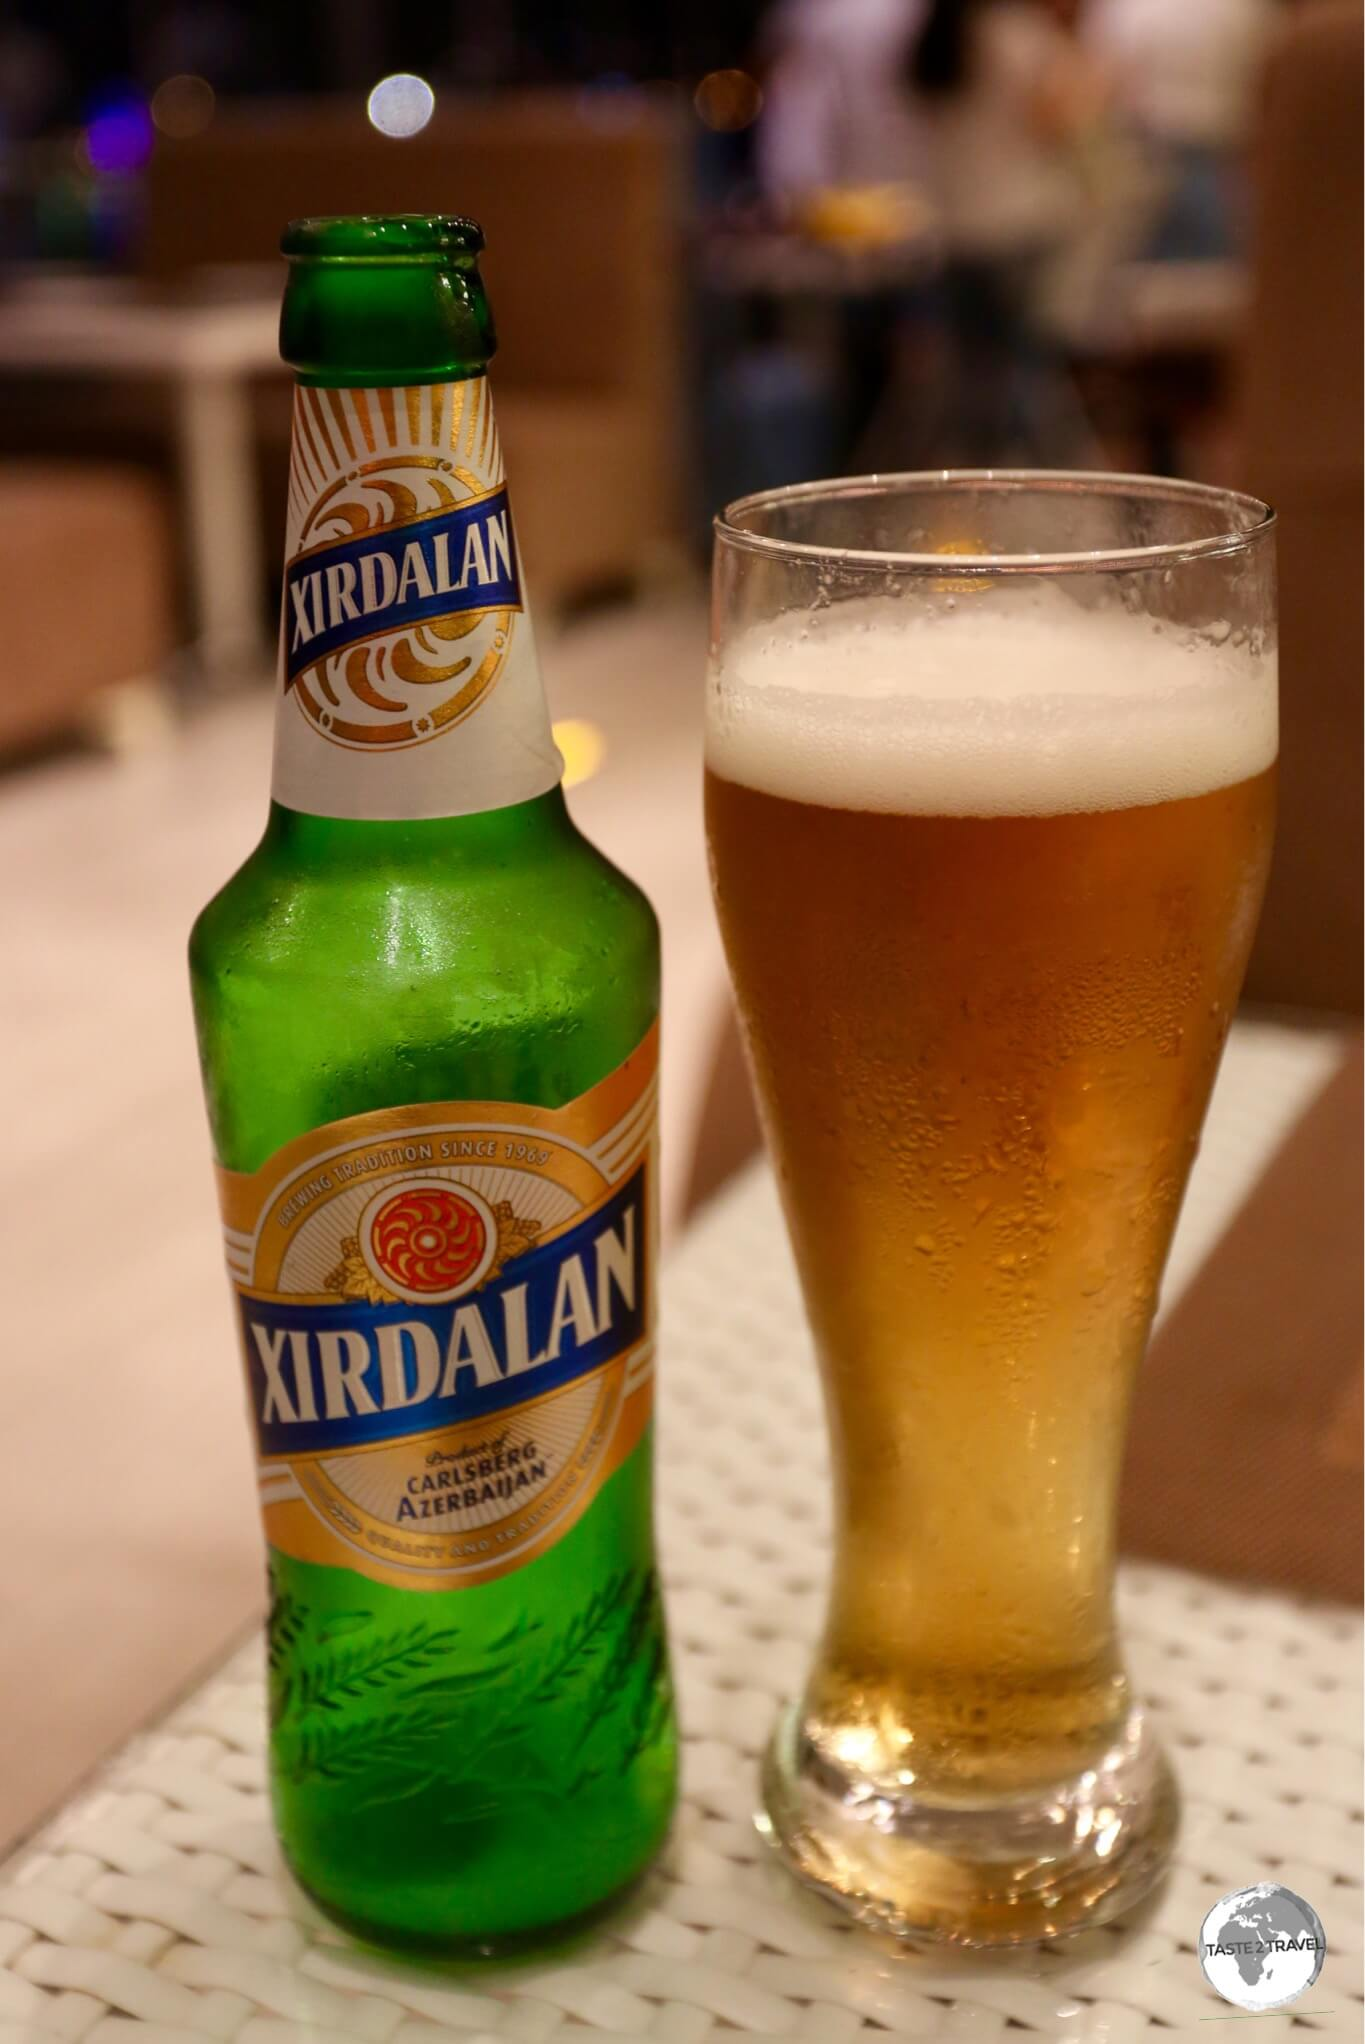 The national beer of Azerbaijan, Xirdalan is very smooth on the palette.